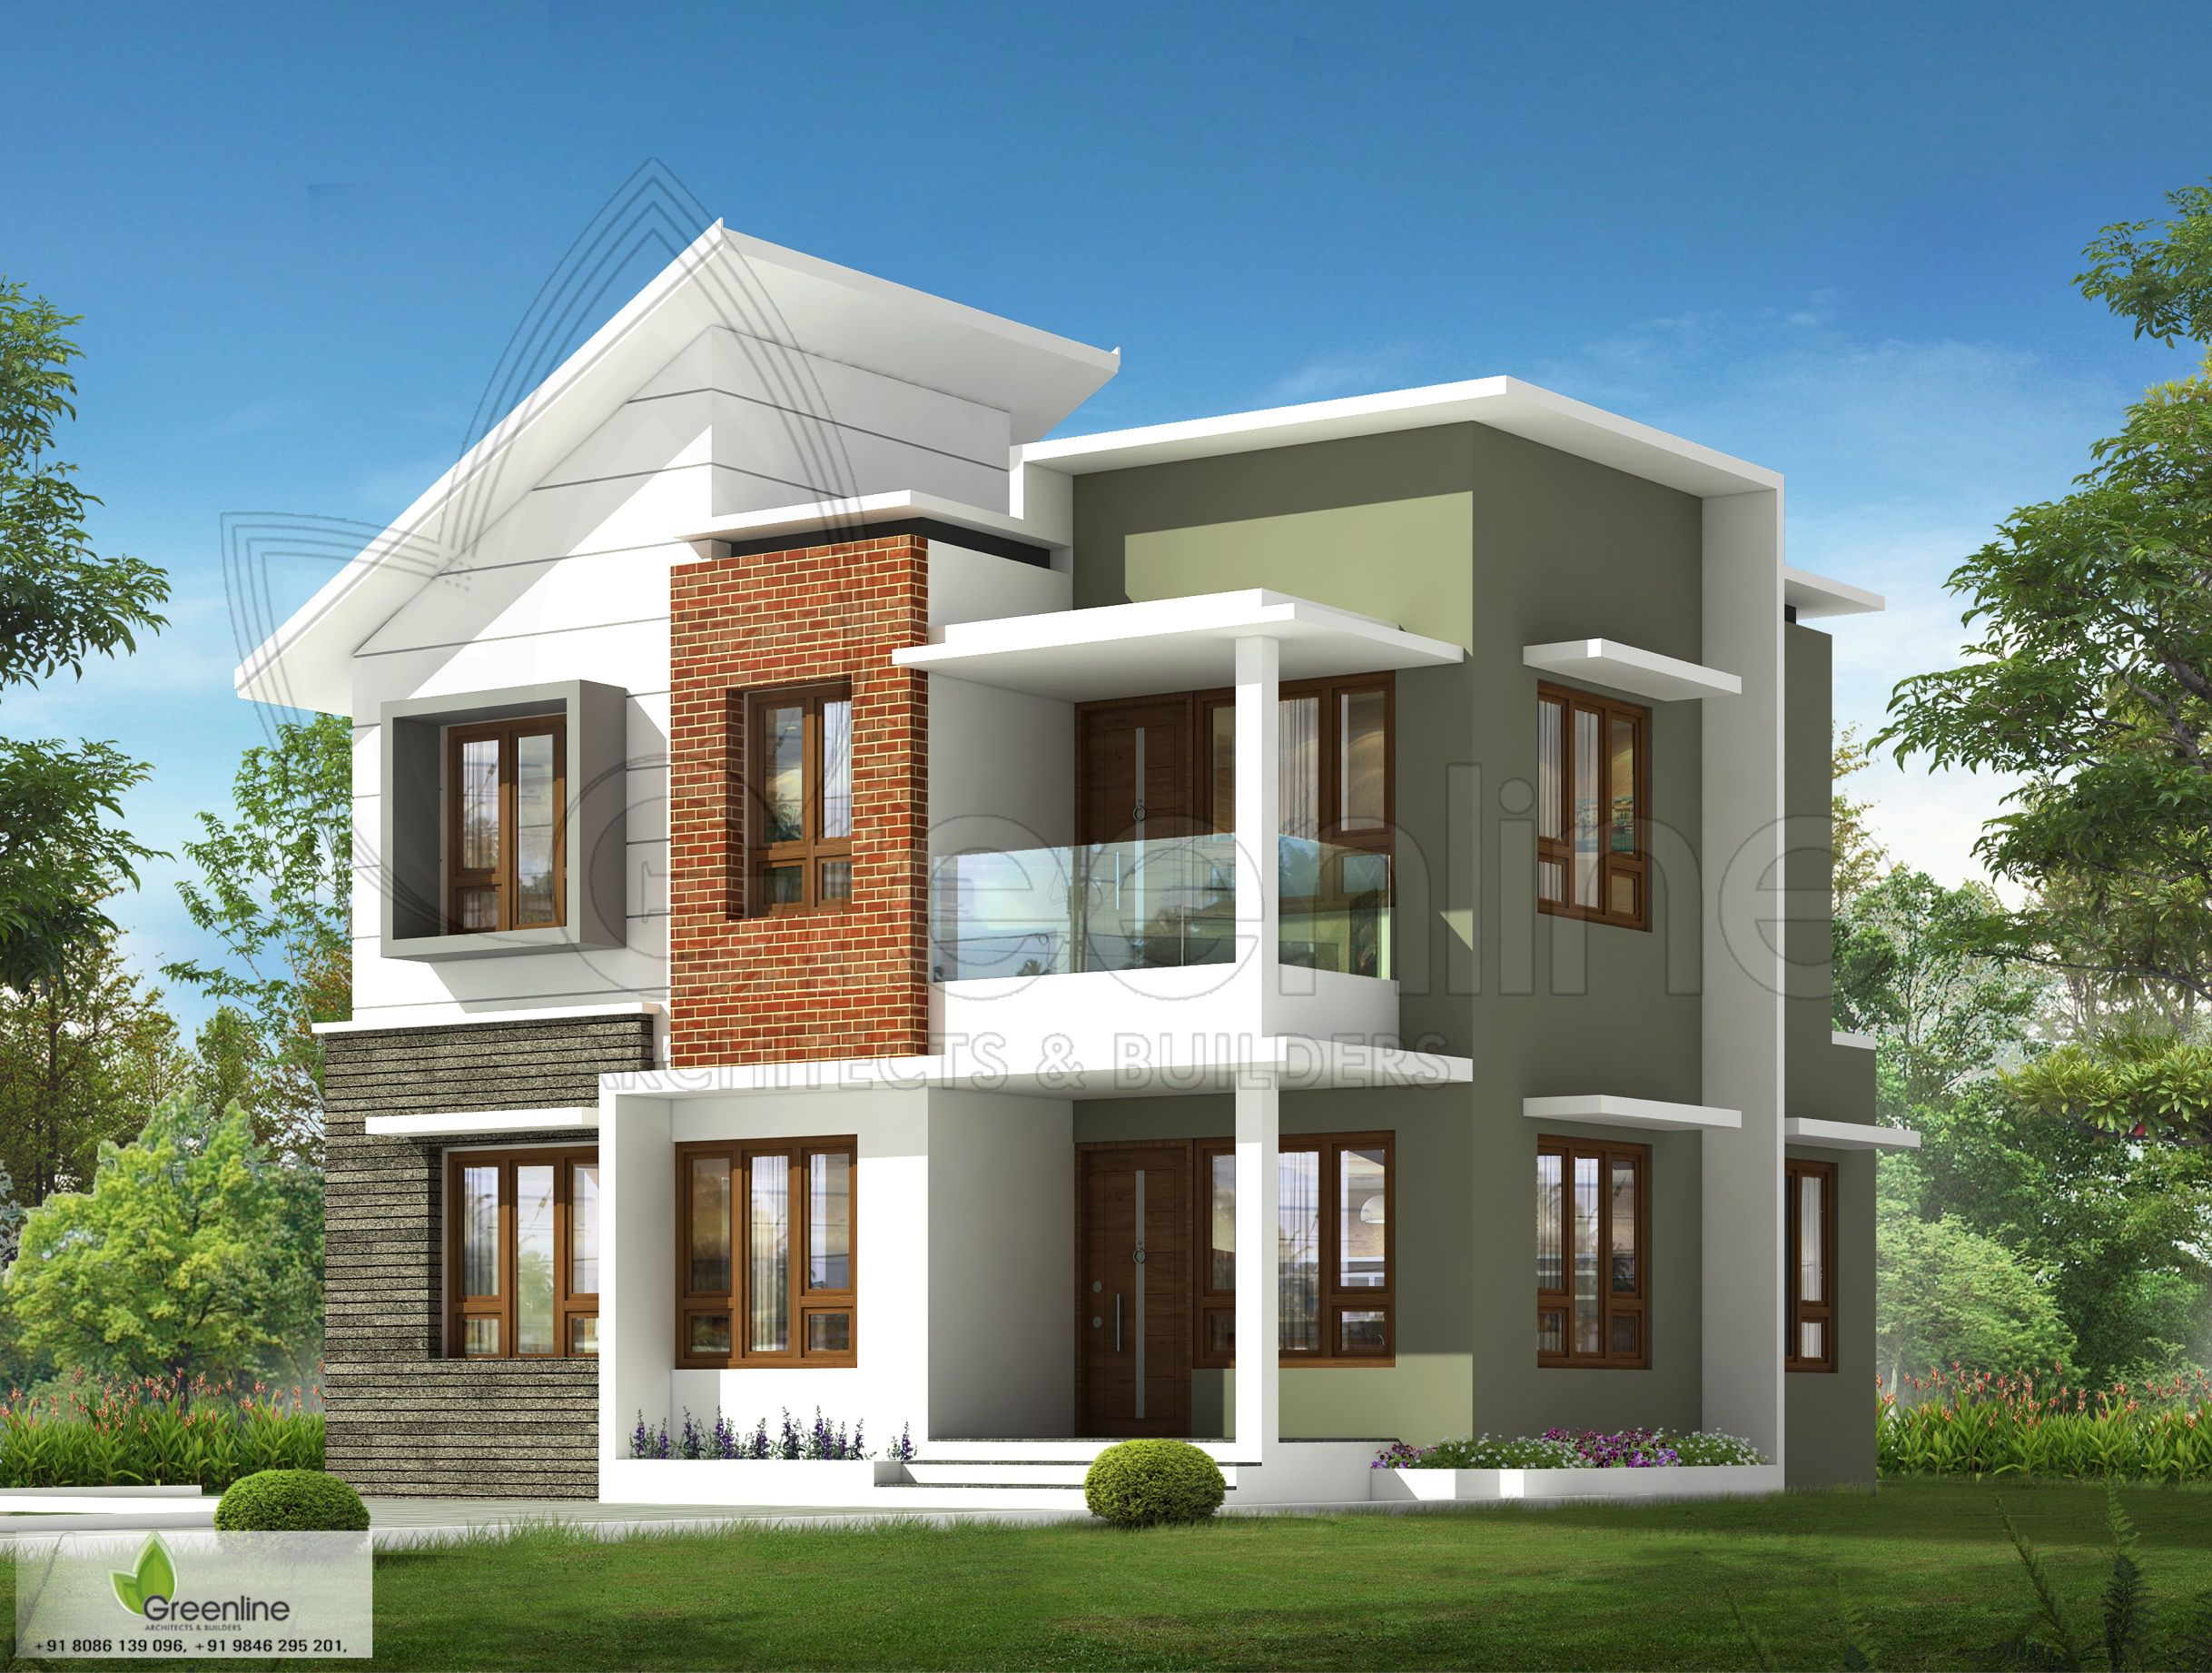 Low Budget House Design Greenlinearchitects Modern Modernist Architizer Exteriordesign Reside With Images Kerala House Design Architecture House House Design